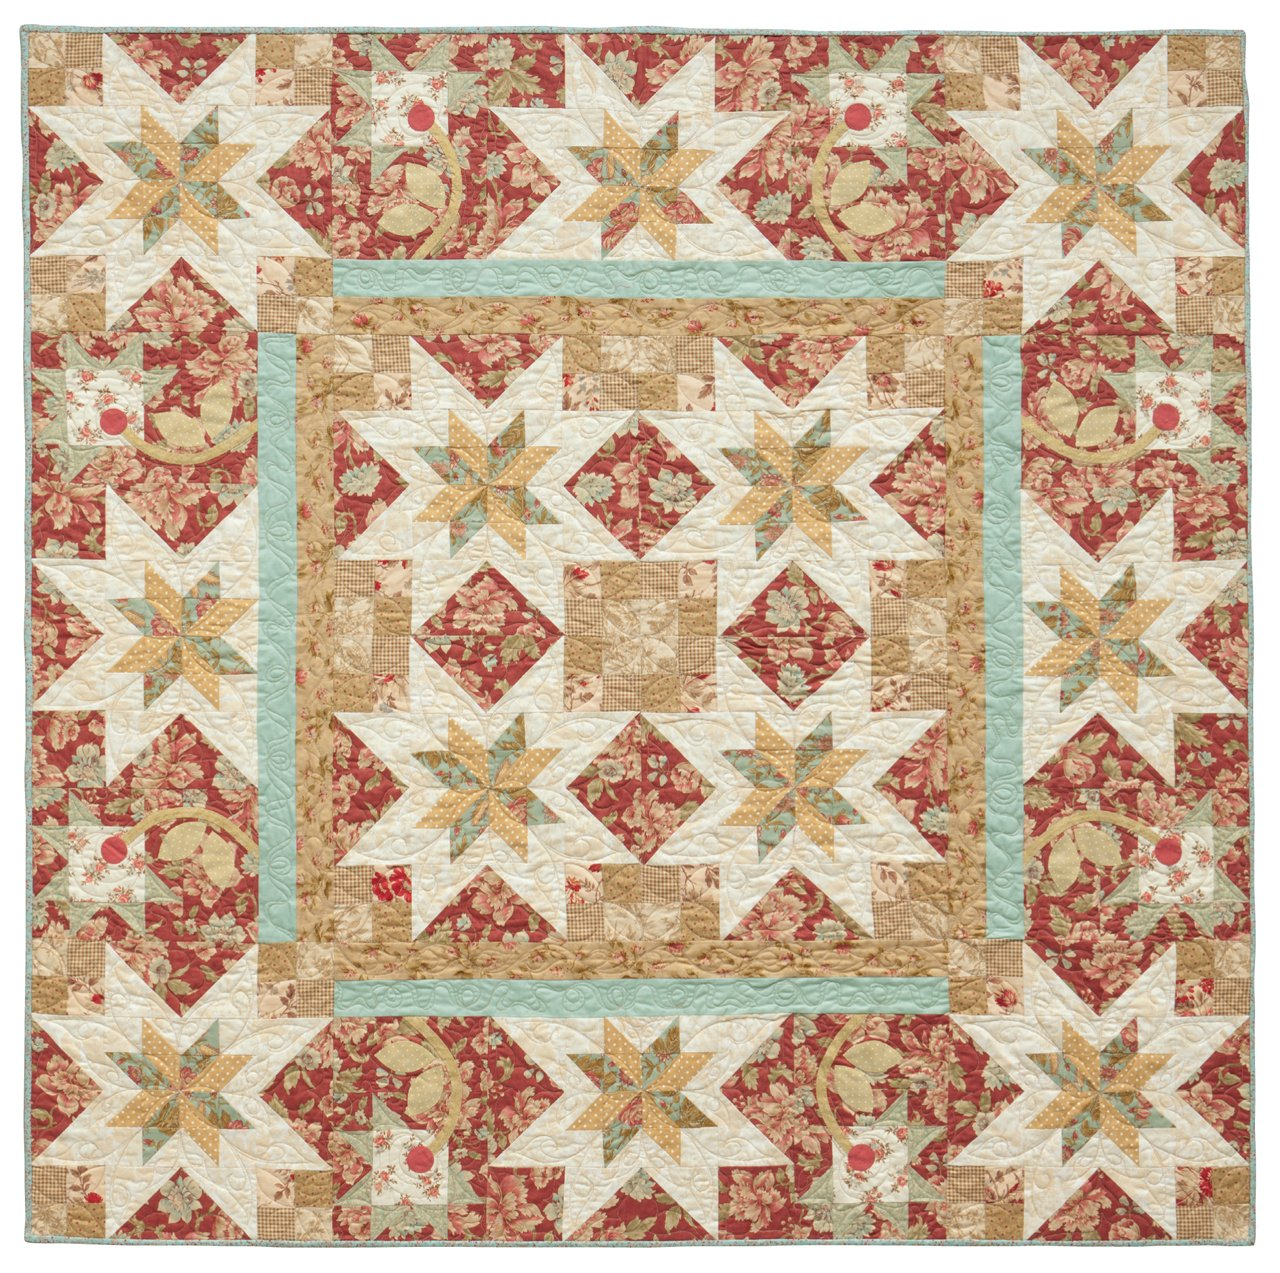 Pretty Patchwork Quilts: Traditional Patterns with Appliqué Accents by That Patchwork Place